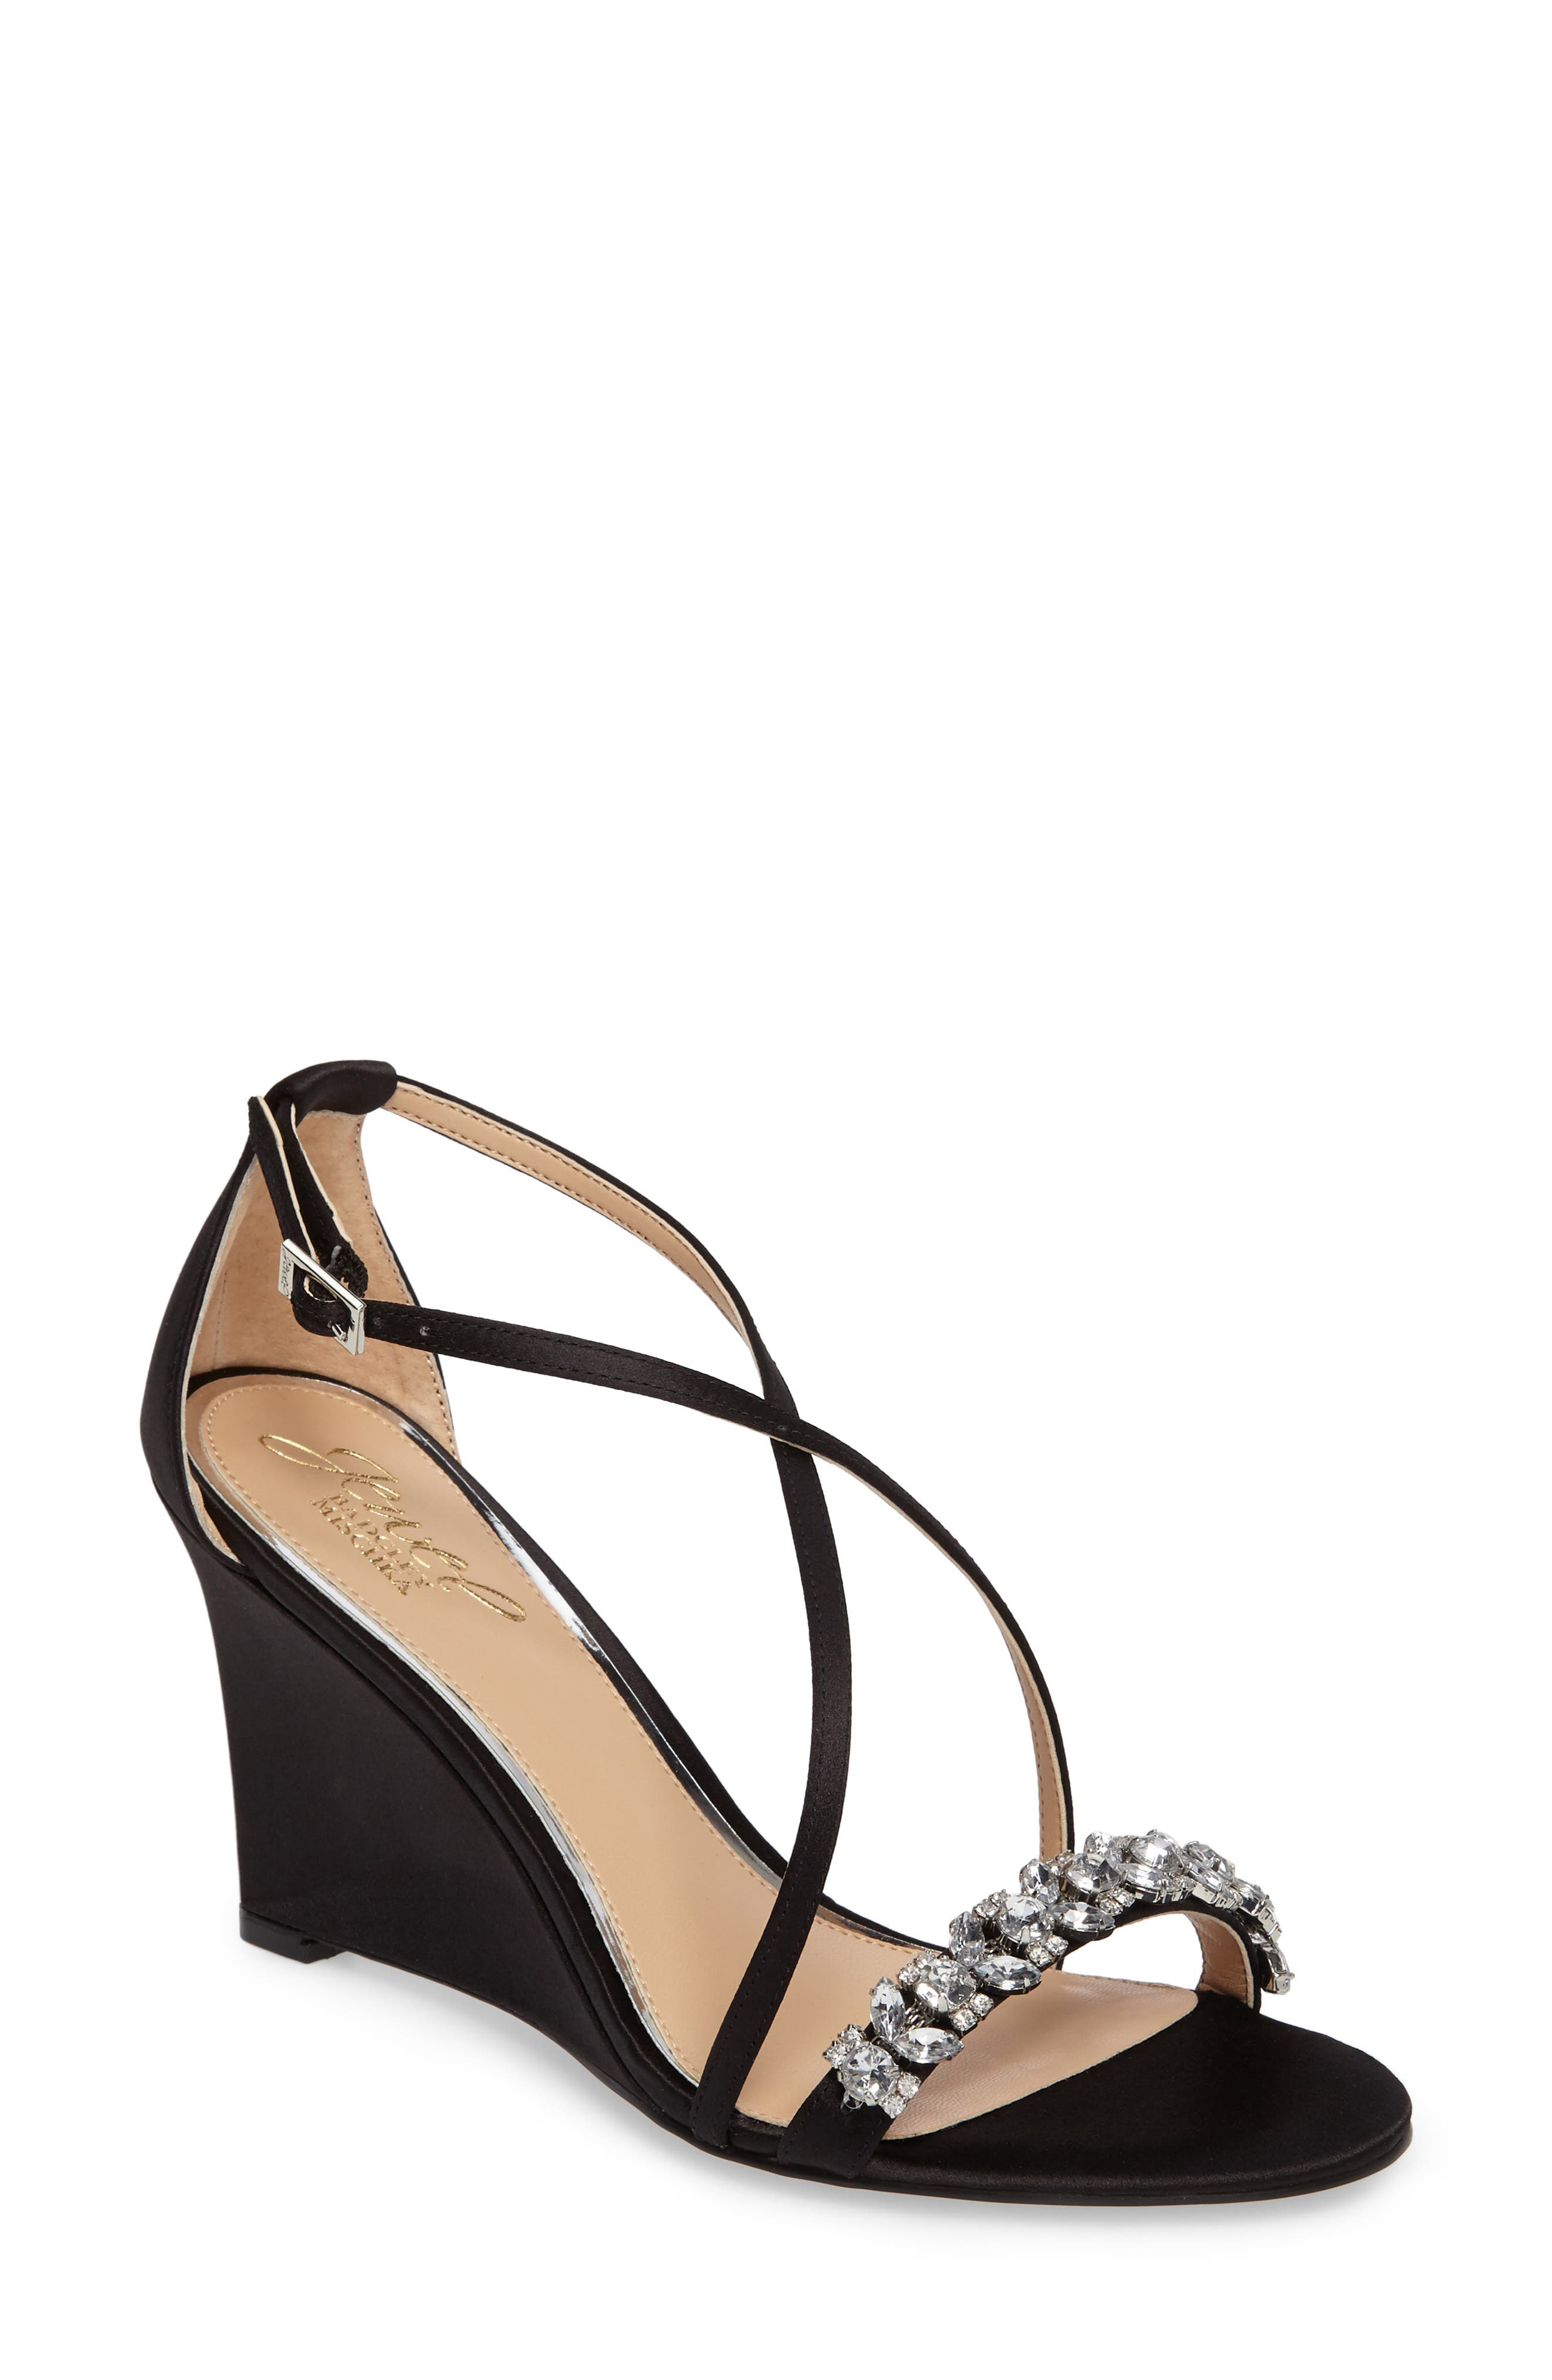 Embellished Strappy Wedge Sandal,                             Main thumbnail 1, color,                             015